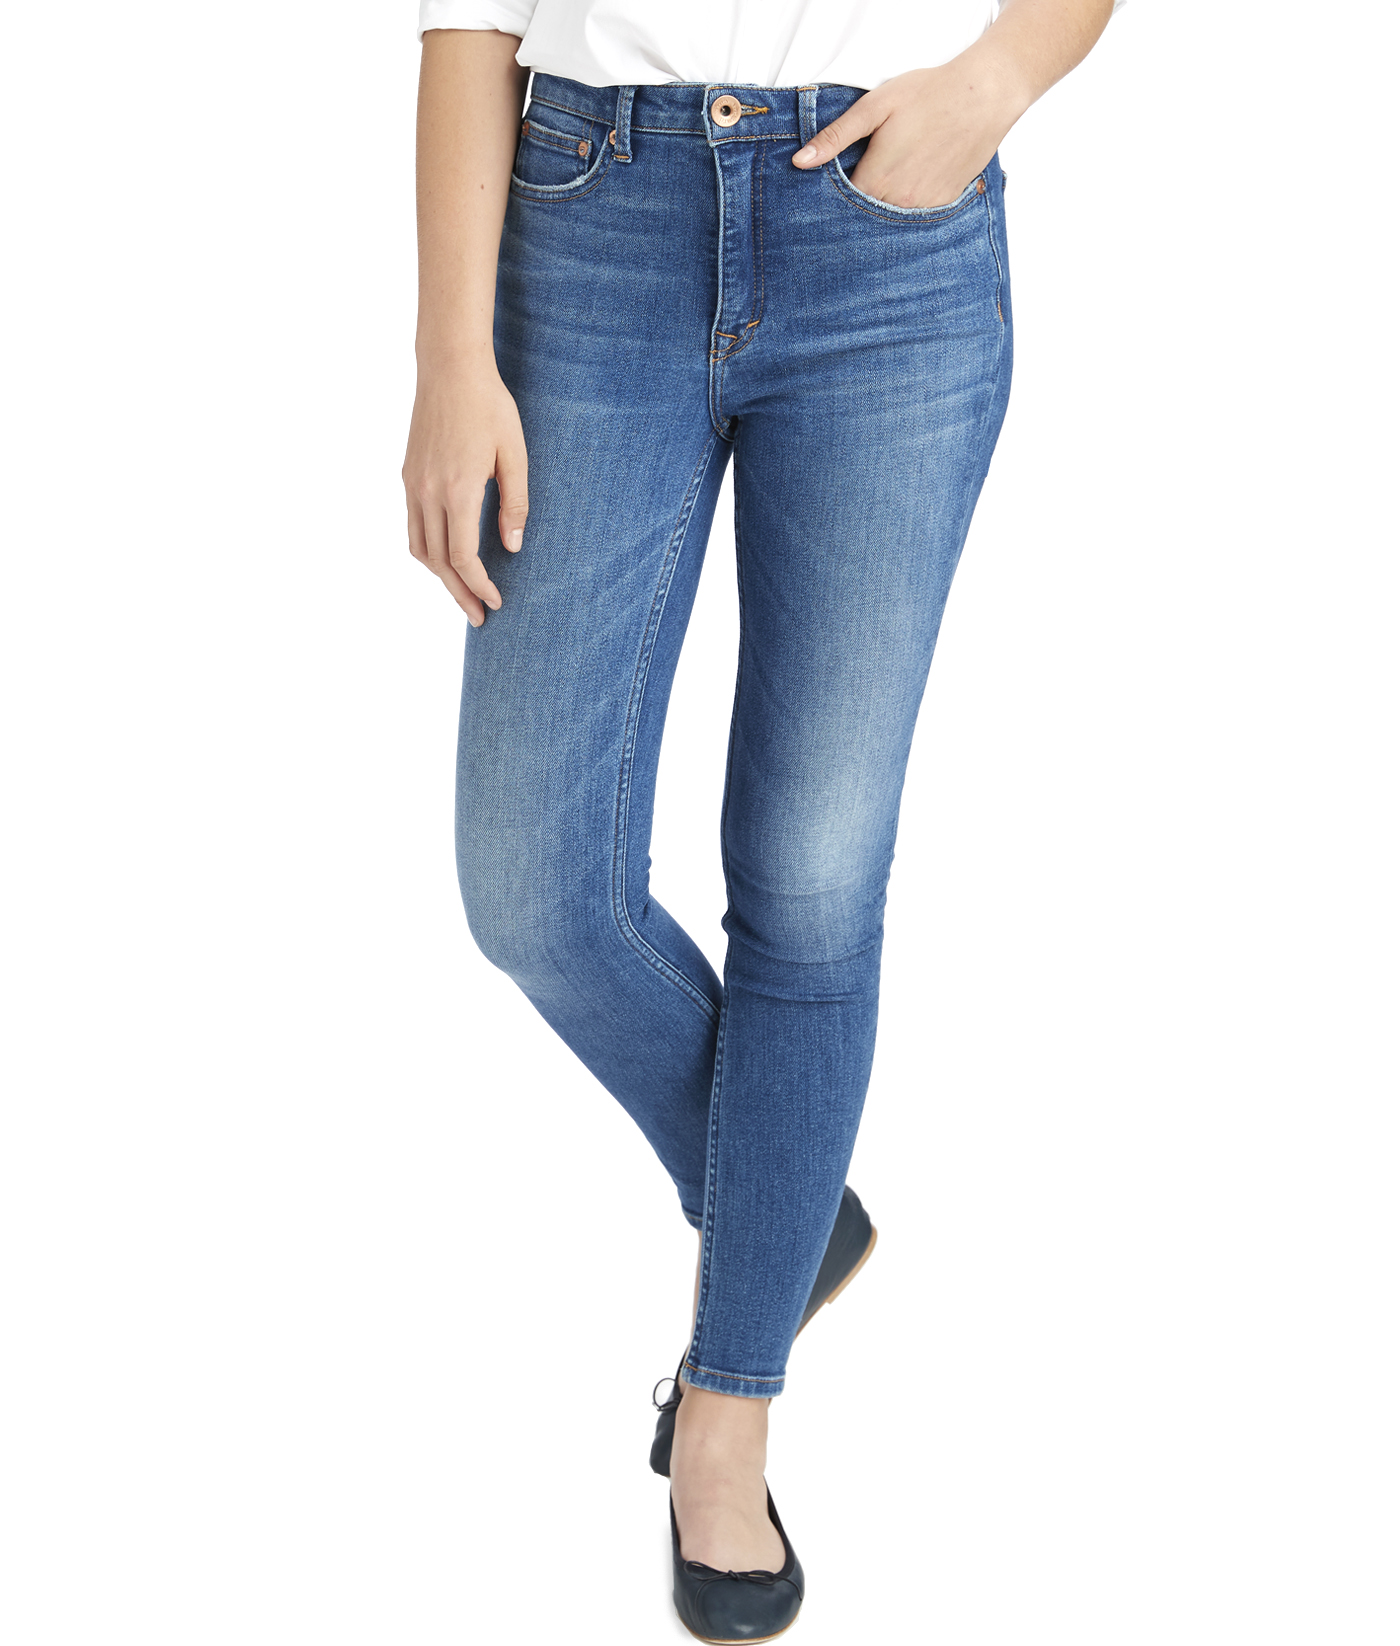 Made in the USA Jamie High Rise Medium Wash Jeans